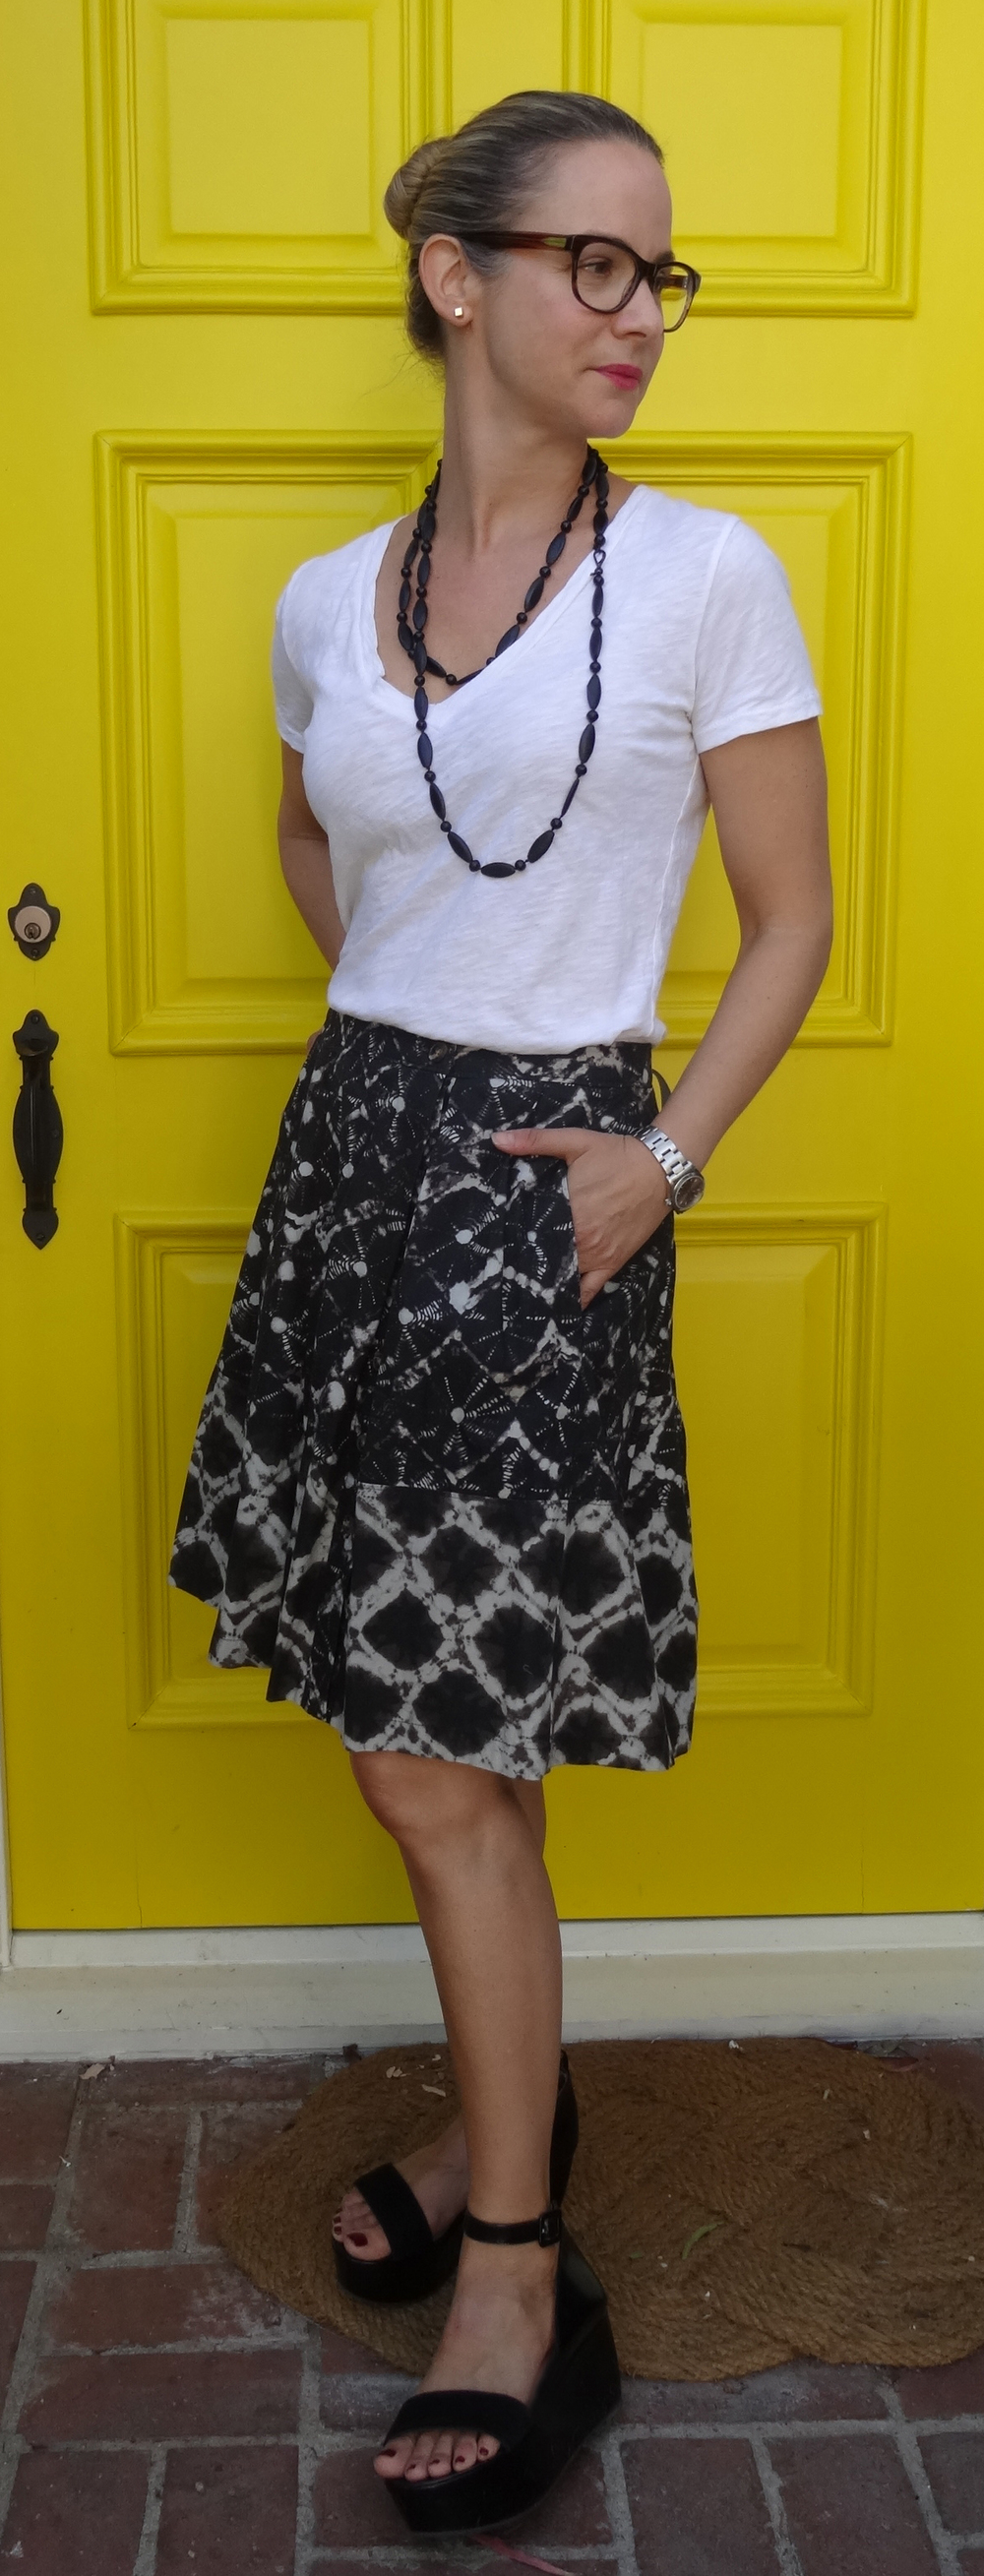 Antique Black Beads, Thakoon Skirt, Robert Clergerie Shoes, Hanes Tee